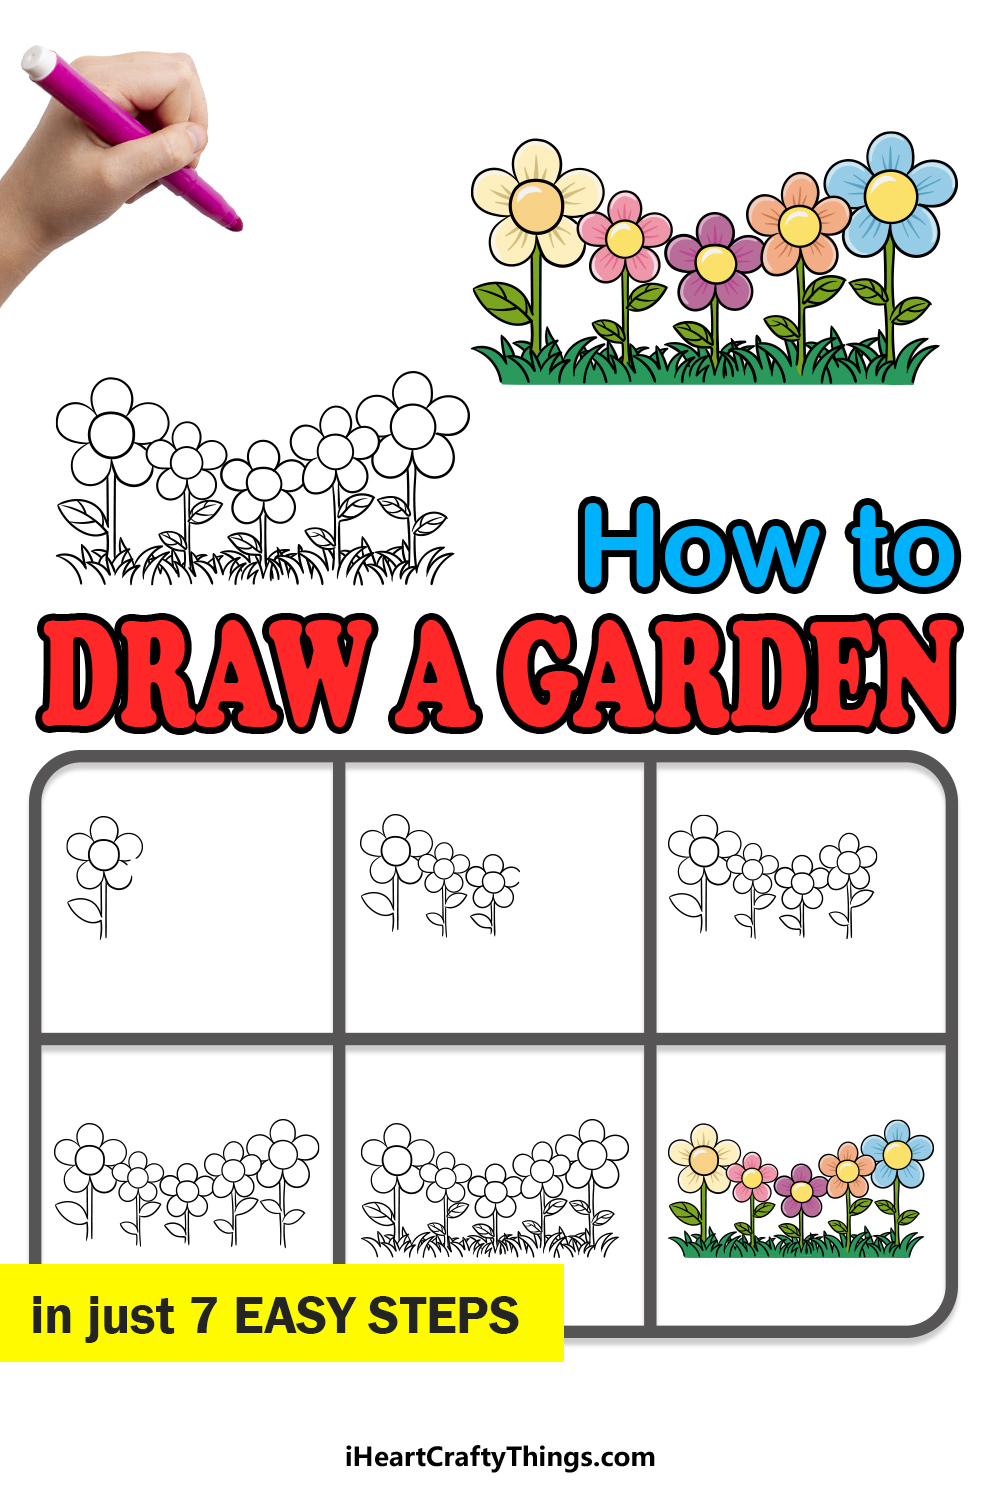 how to draw a garden in 7 easy steps